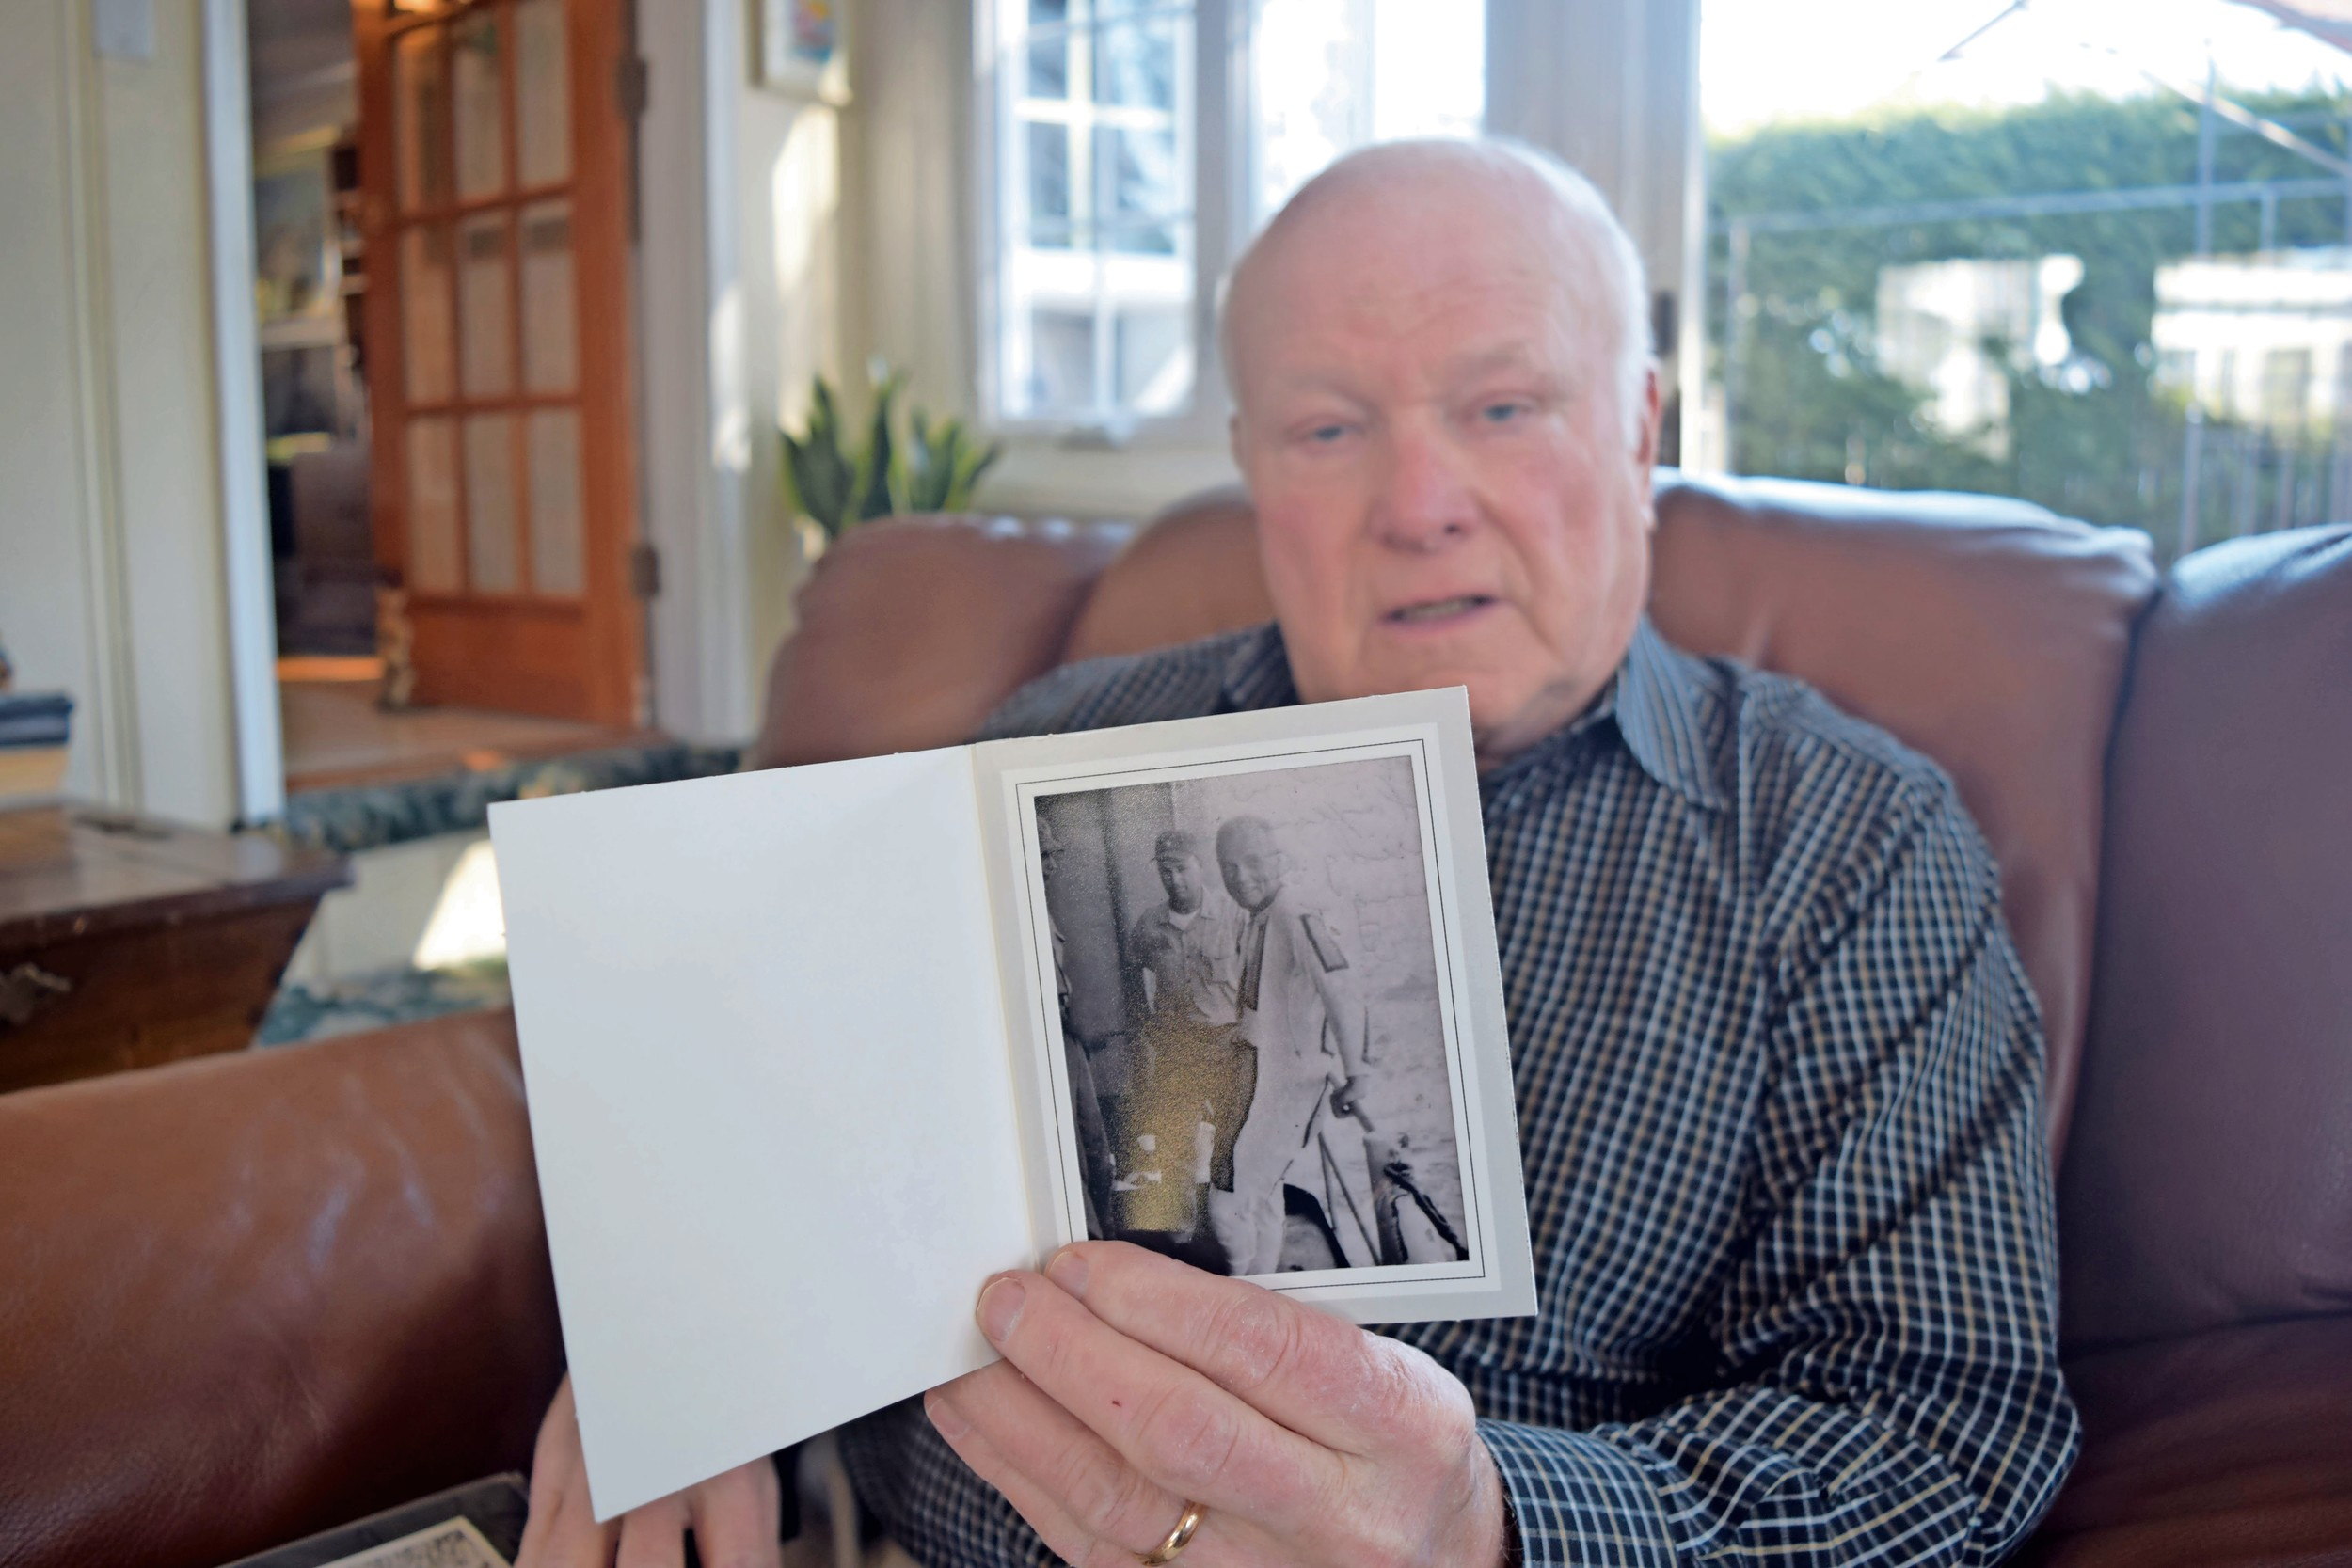 Raymond Cody, a 75-year-old Wantagh resident, with a photo of John Glenn aboard the USS Noa — the destroyer on which Cody was stationed when Glenn splashed into the ocean after his historic space mission.